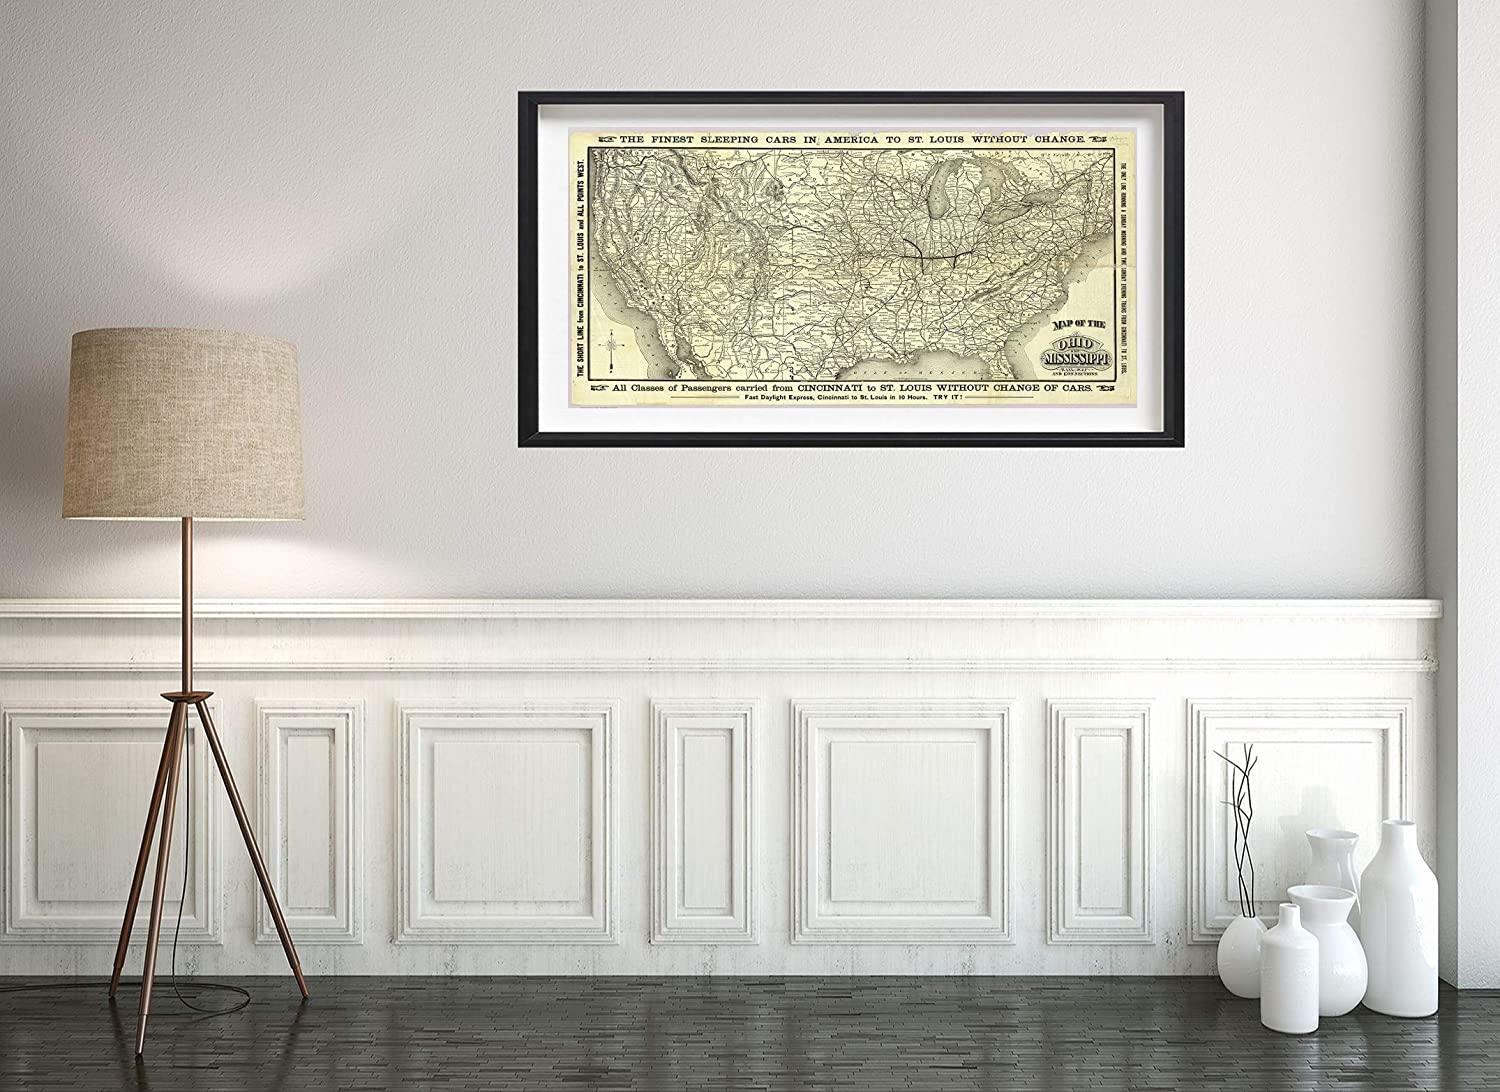 Map|Ohio & Mississippi Railway 1883|Historic Antique Vintage Reprint|Size: 12x24|Ready to Frame